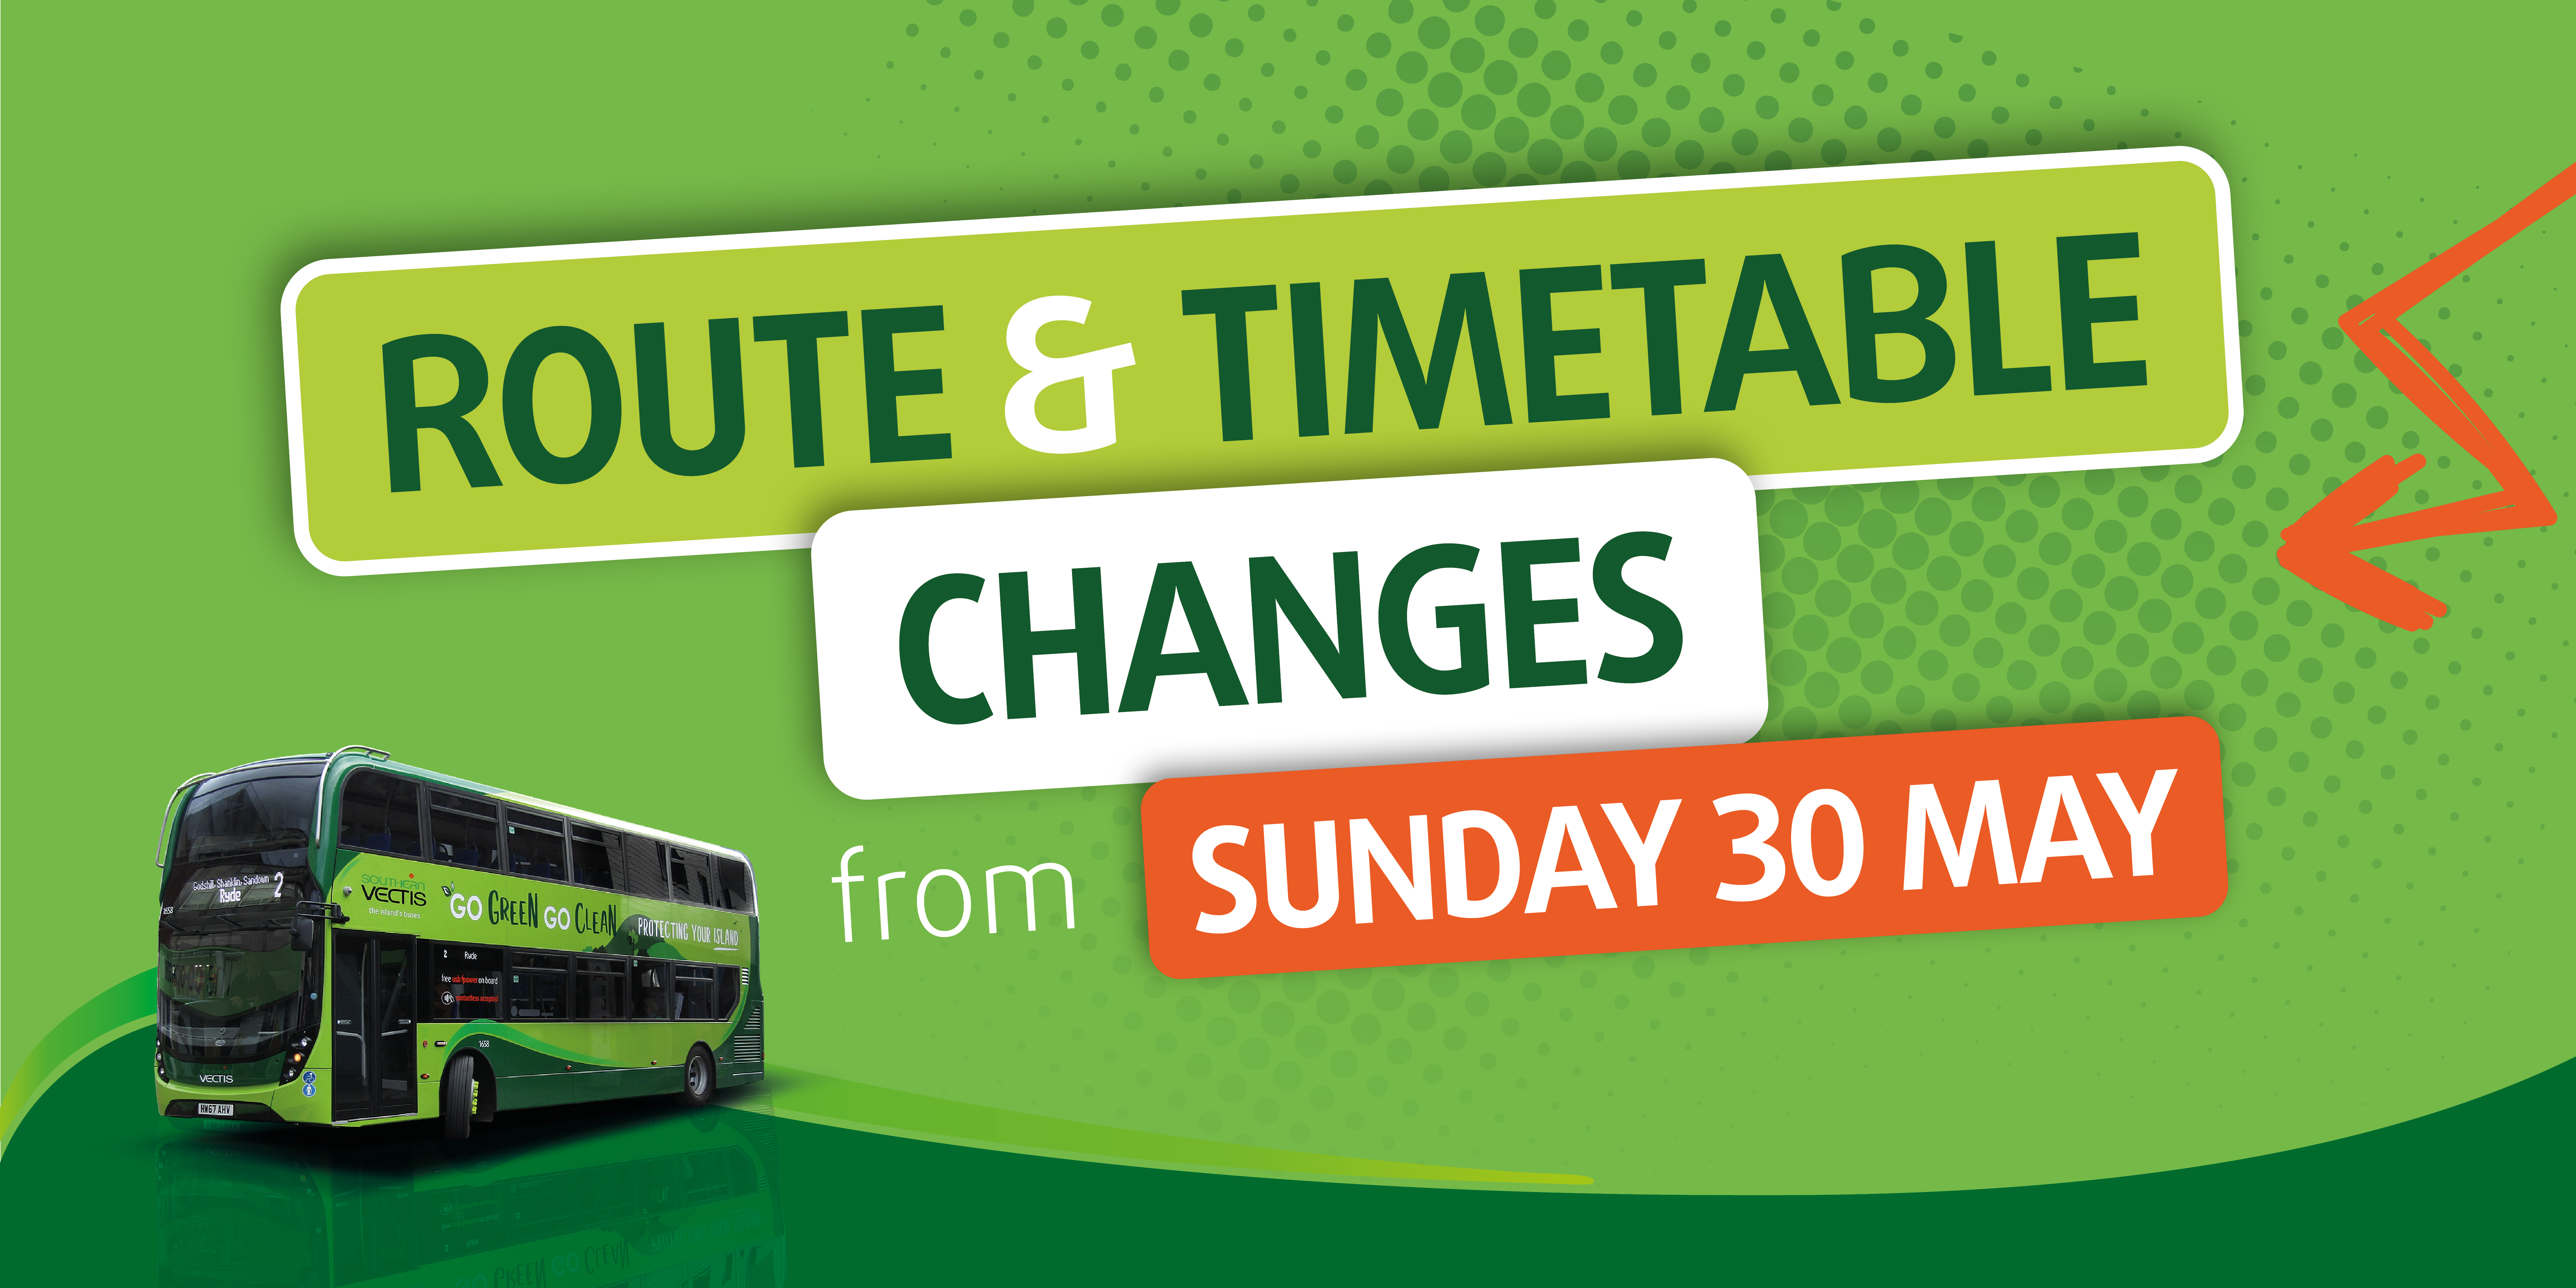 route & timetable changes from sunday 30 May